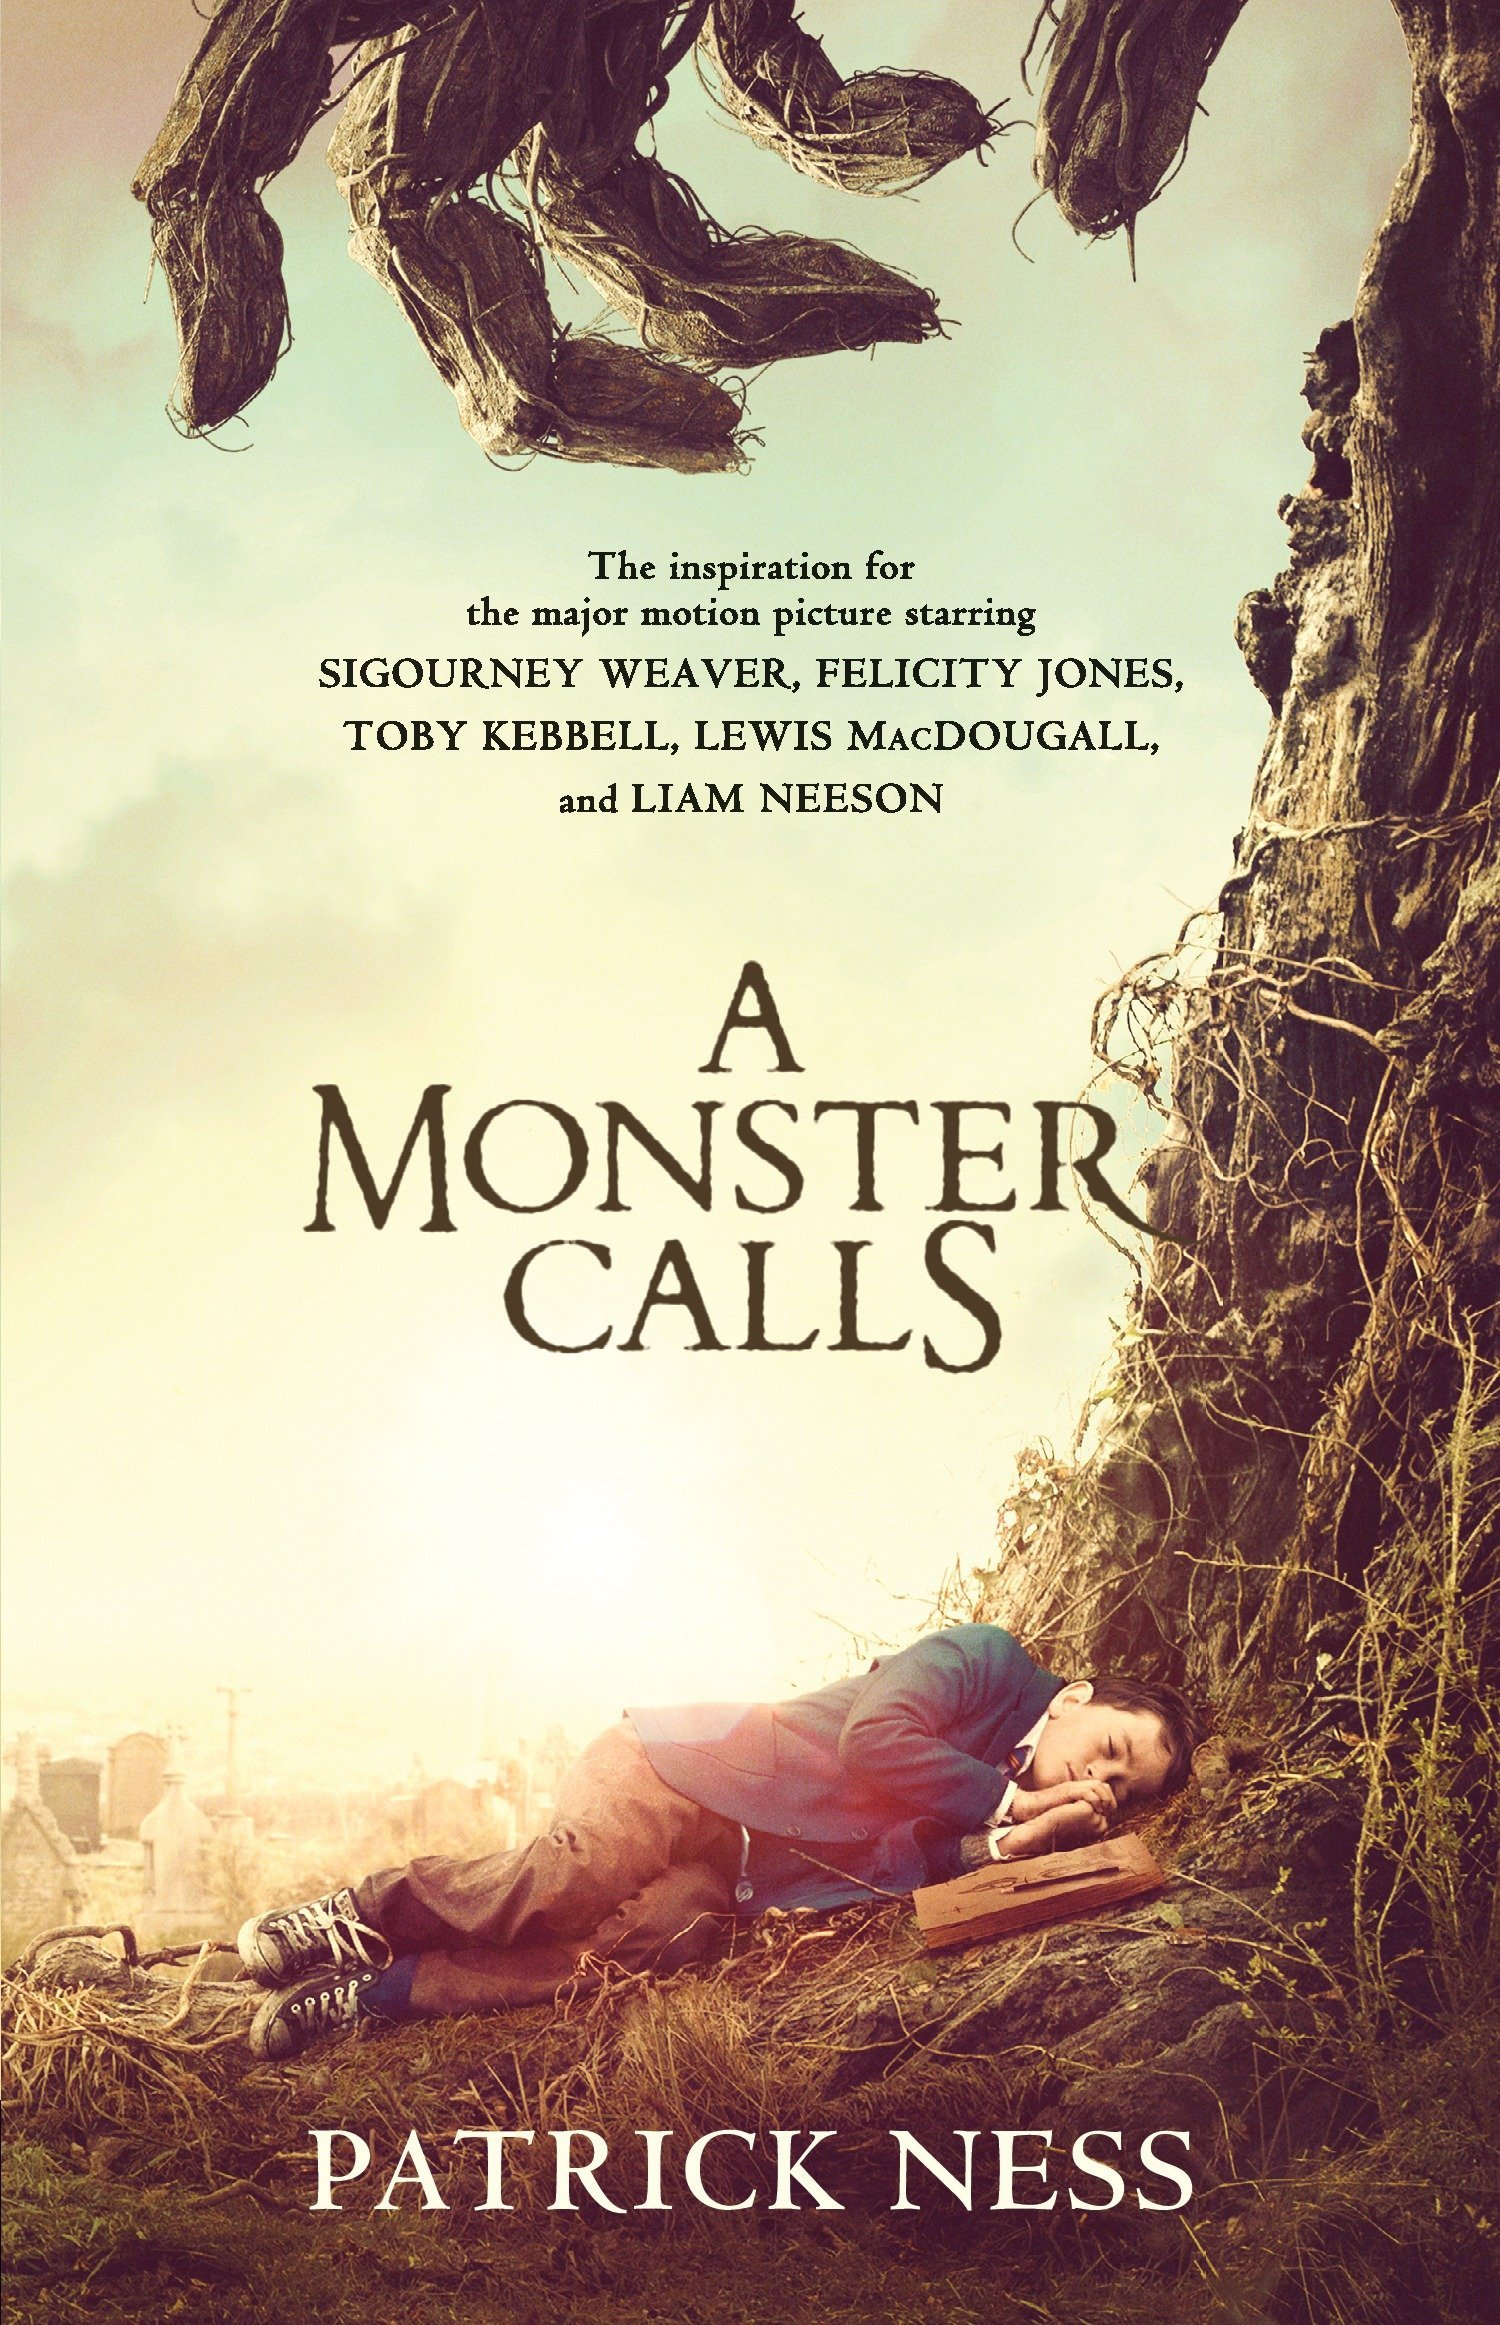 Download A Monster Calls: A Novel (Movie Tie-in): Inspired by an idea from Siobhan Dowd pdf